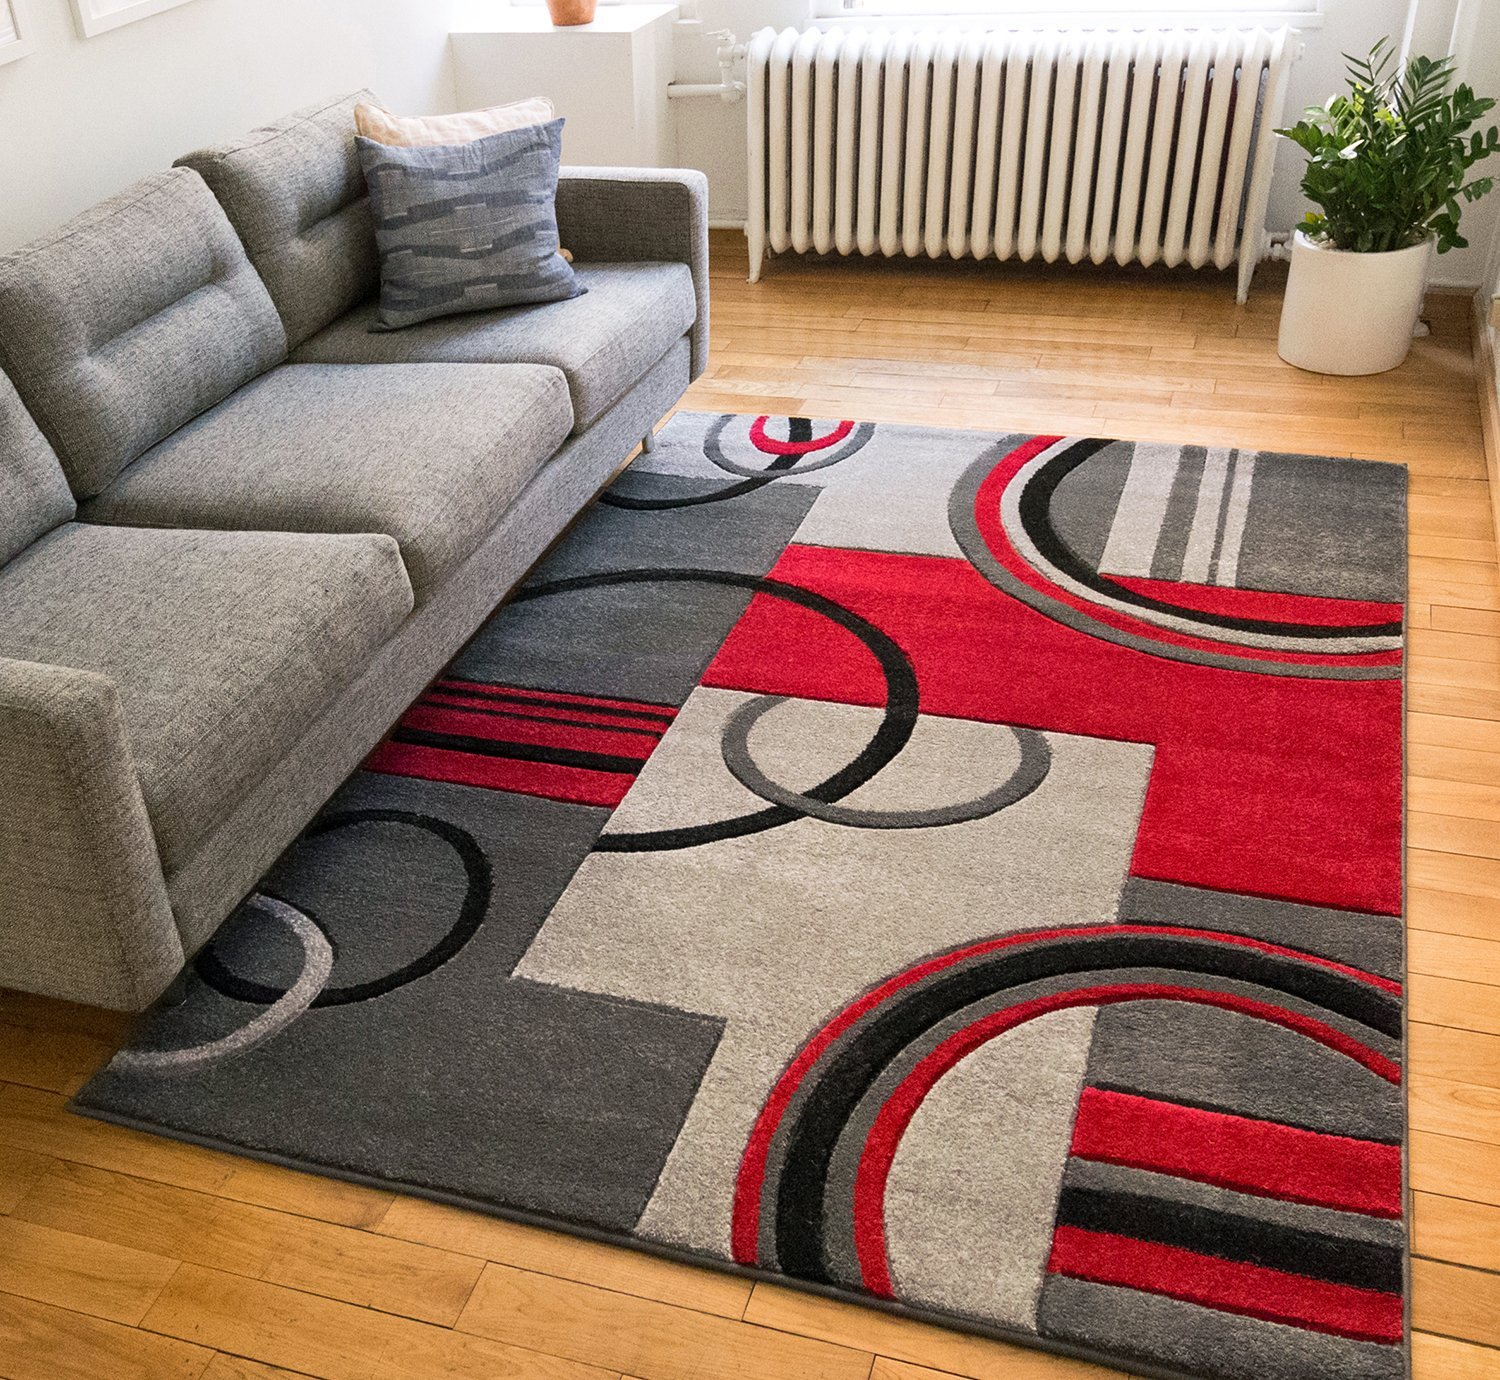 """Echo Shapes & Circles Red / Grey Modern Geometric Comfy Casual Hand Carved Area Rug 5x7 ( 5'3"""" x 7'3"""" ) Easy Clean Stain Fade Resistant Shed Free Abstract Contemporary Thick Soft Plush Living Room"""